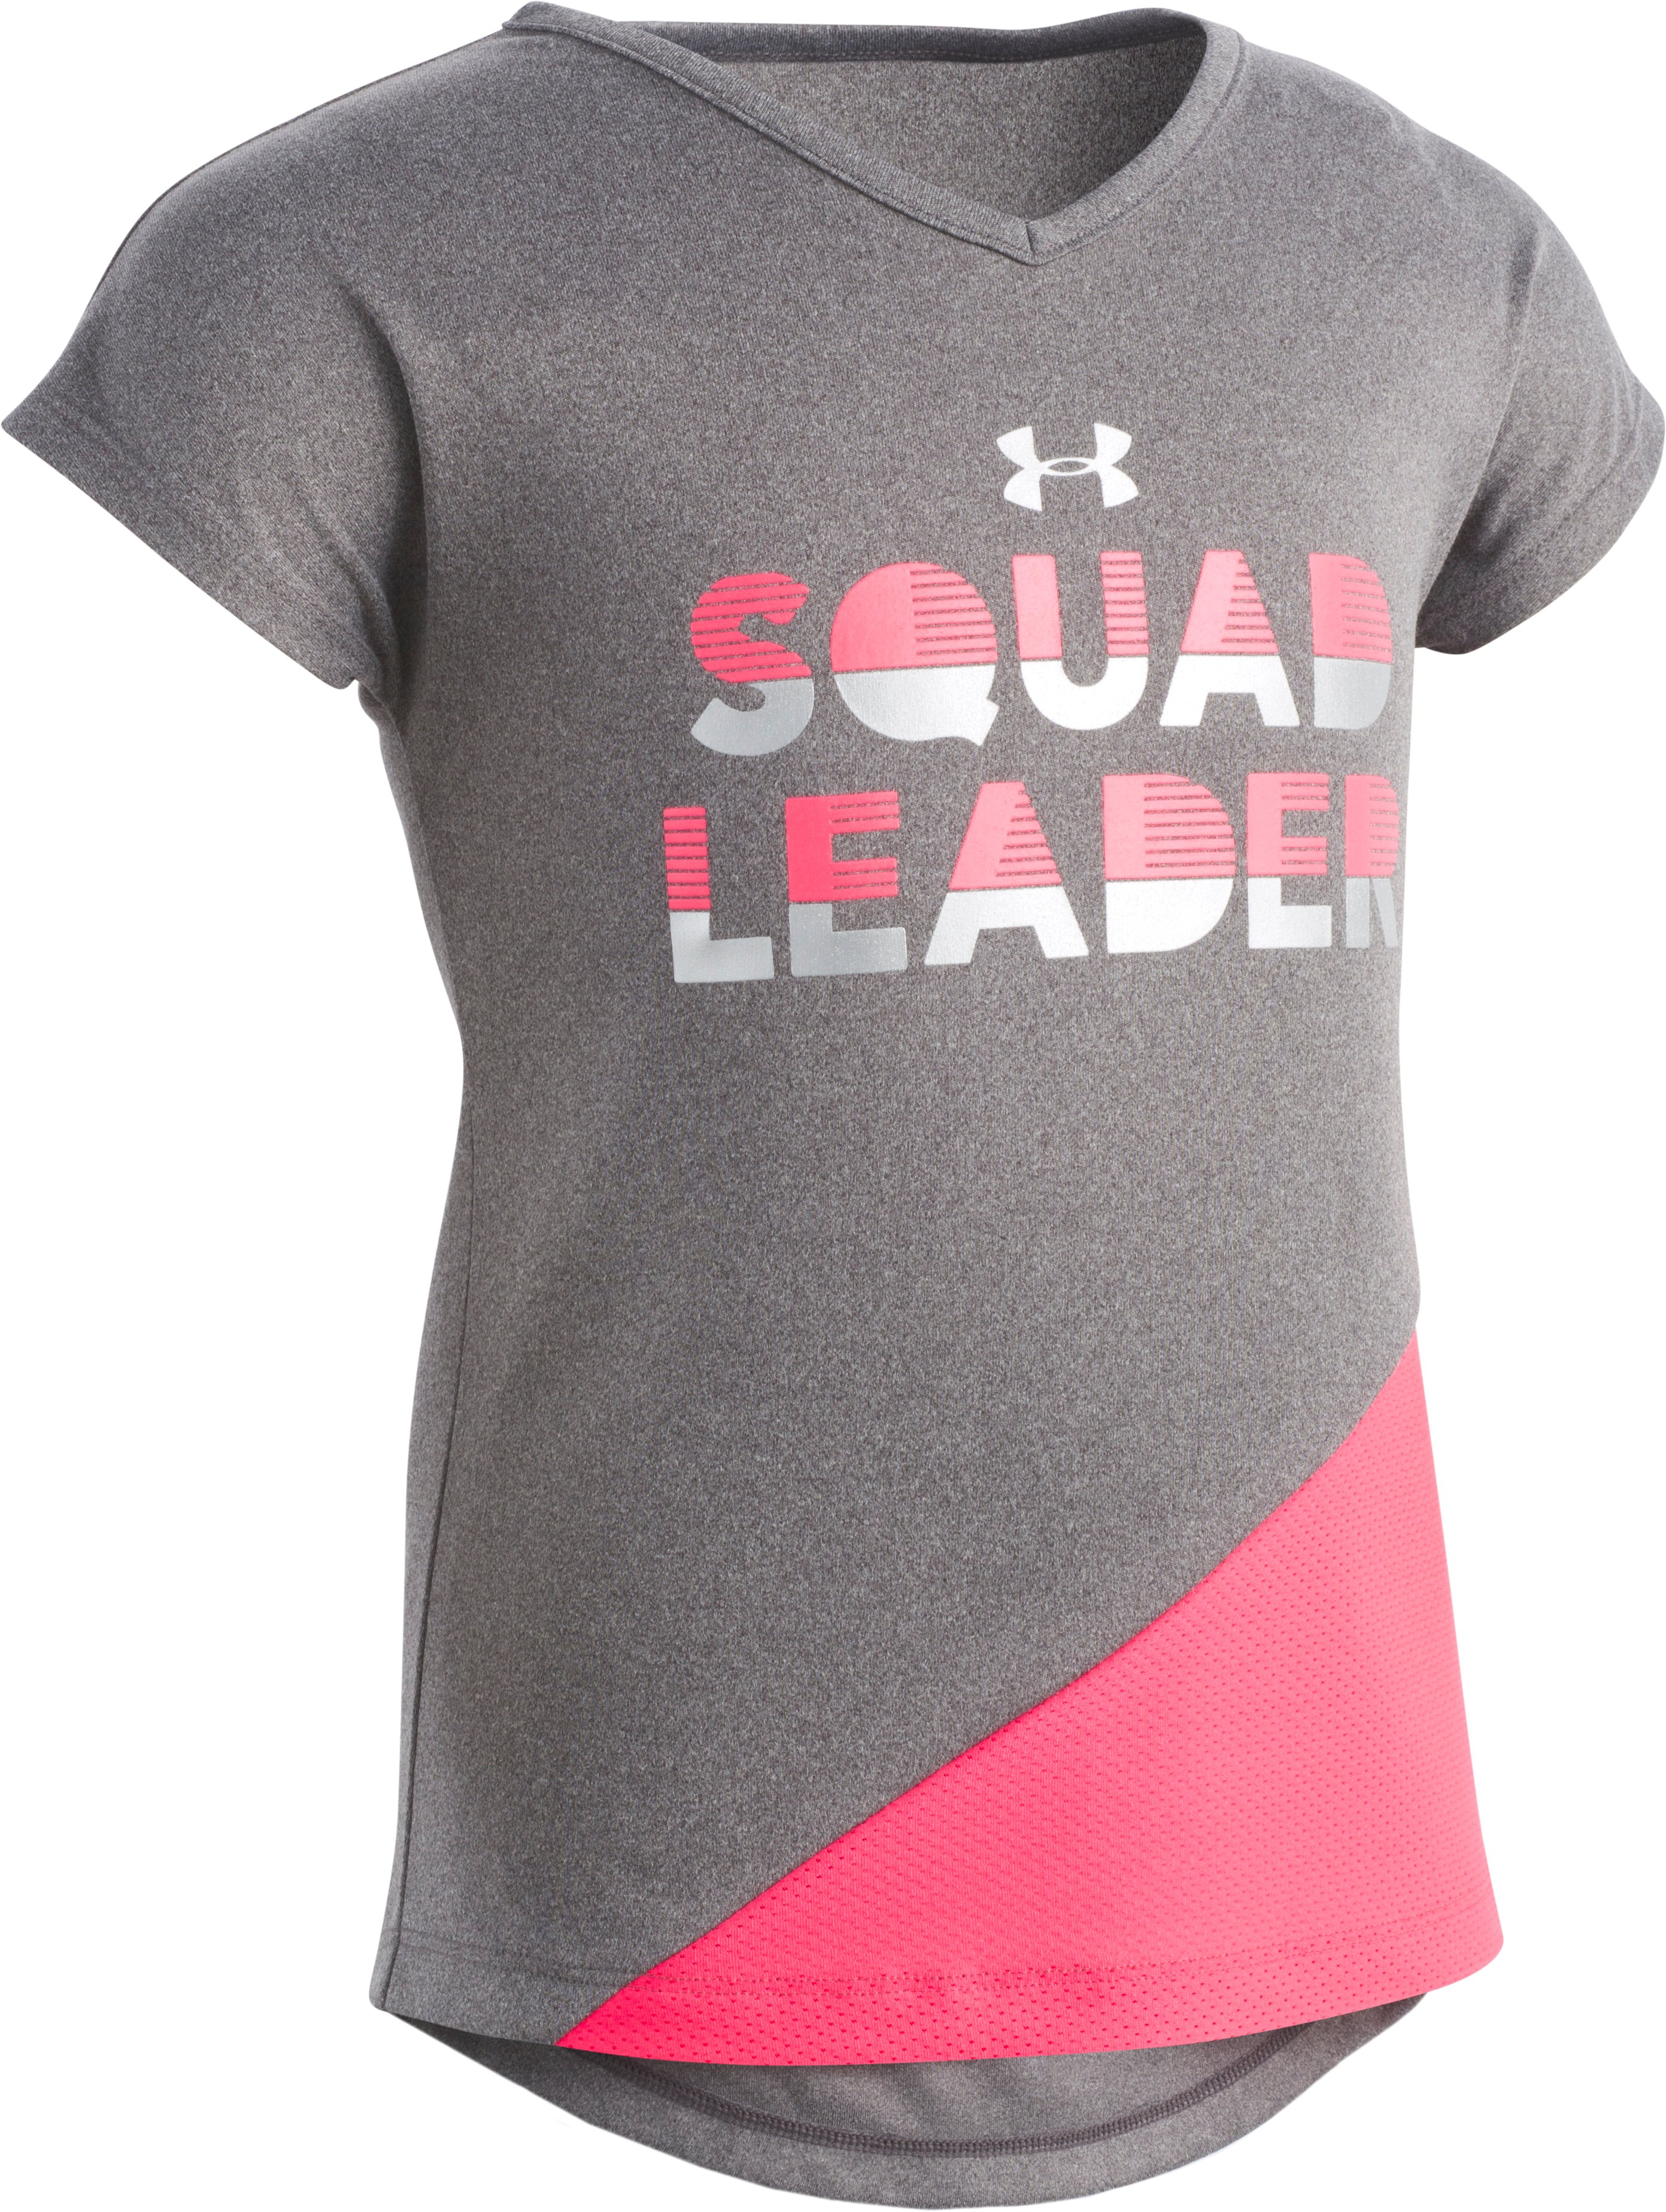 Girls' Toddler UA Squad Leader T-Shirt , Charcoal Medium Heather, zoomed